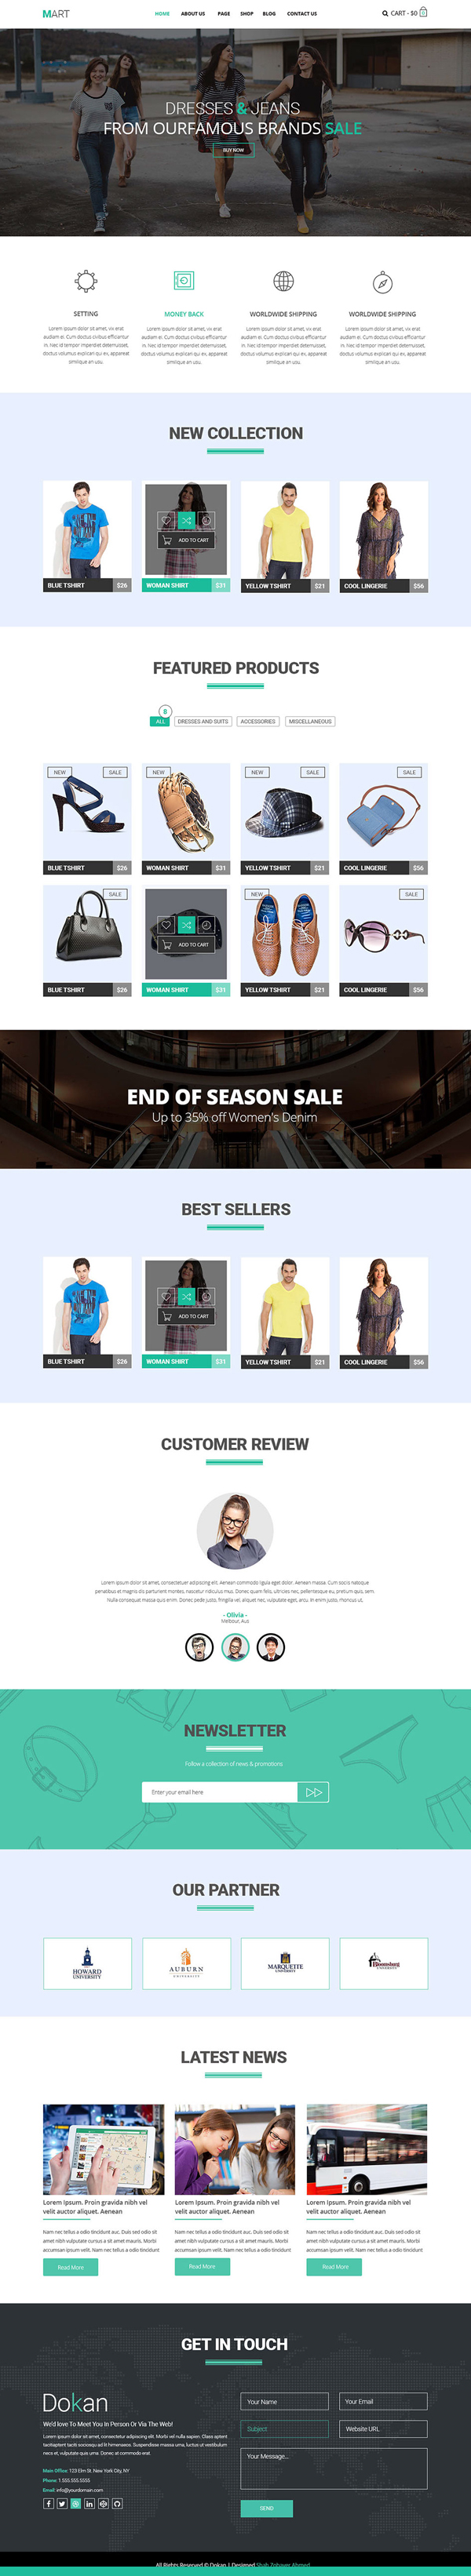 Website Templates Free Mart  Ecommerce Website Template Free Psd & Html  Psd Templates